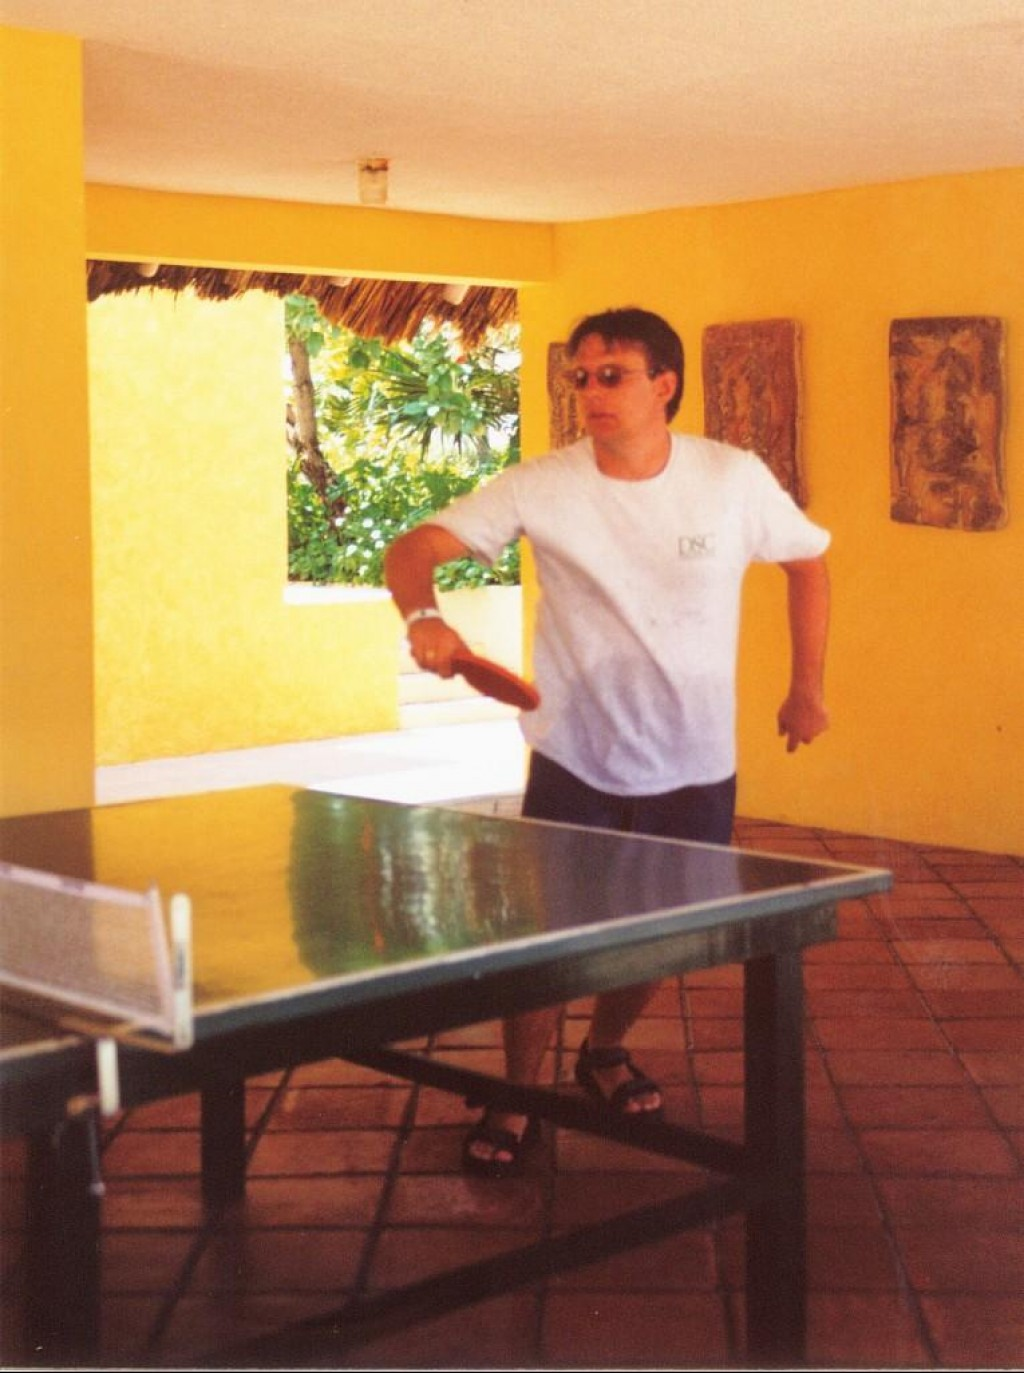 Ian getting his butt kicked in Ping Pong.